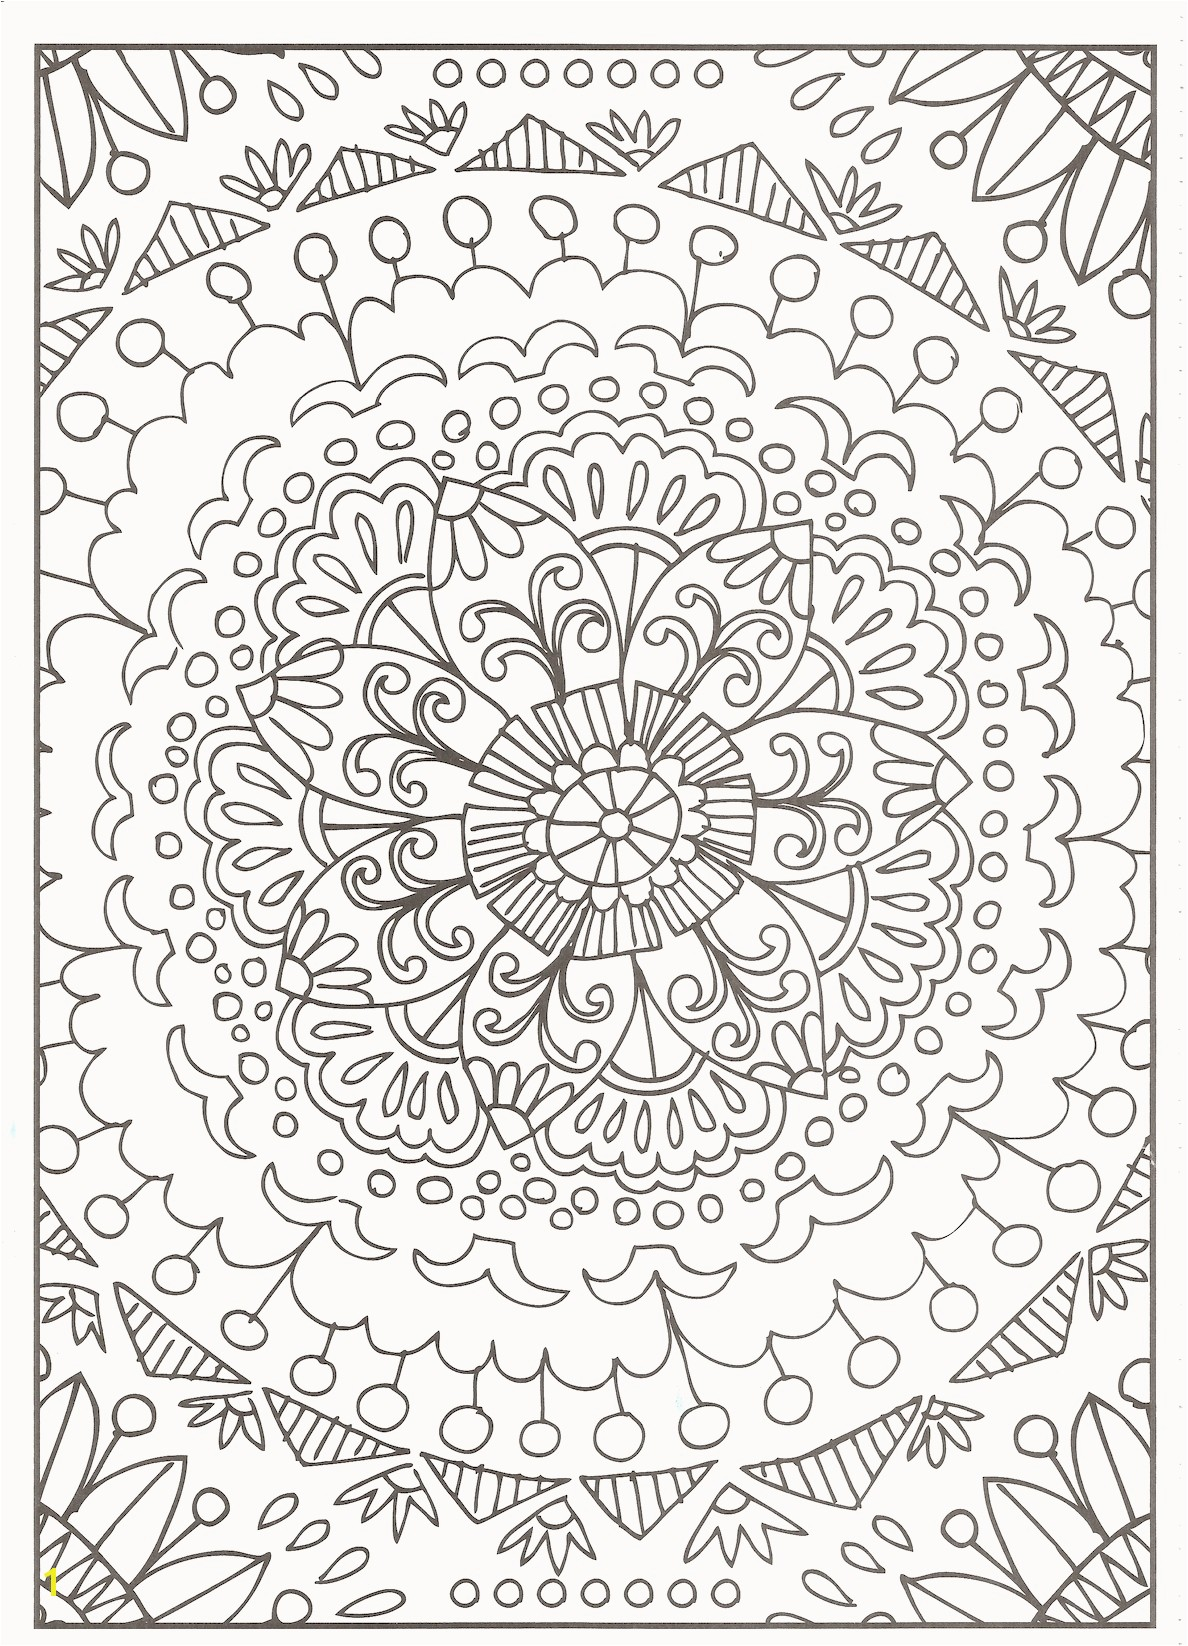 Coloring Pages with Quotes Unique Free Dr Seuss Coloring Pages New Fresh S S Media Cache Ak0